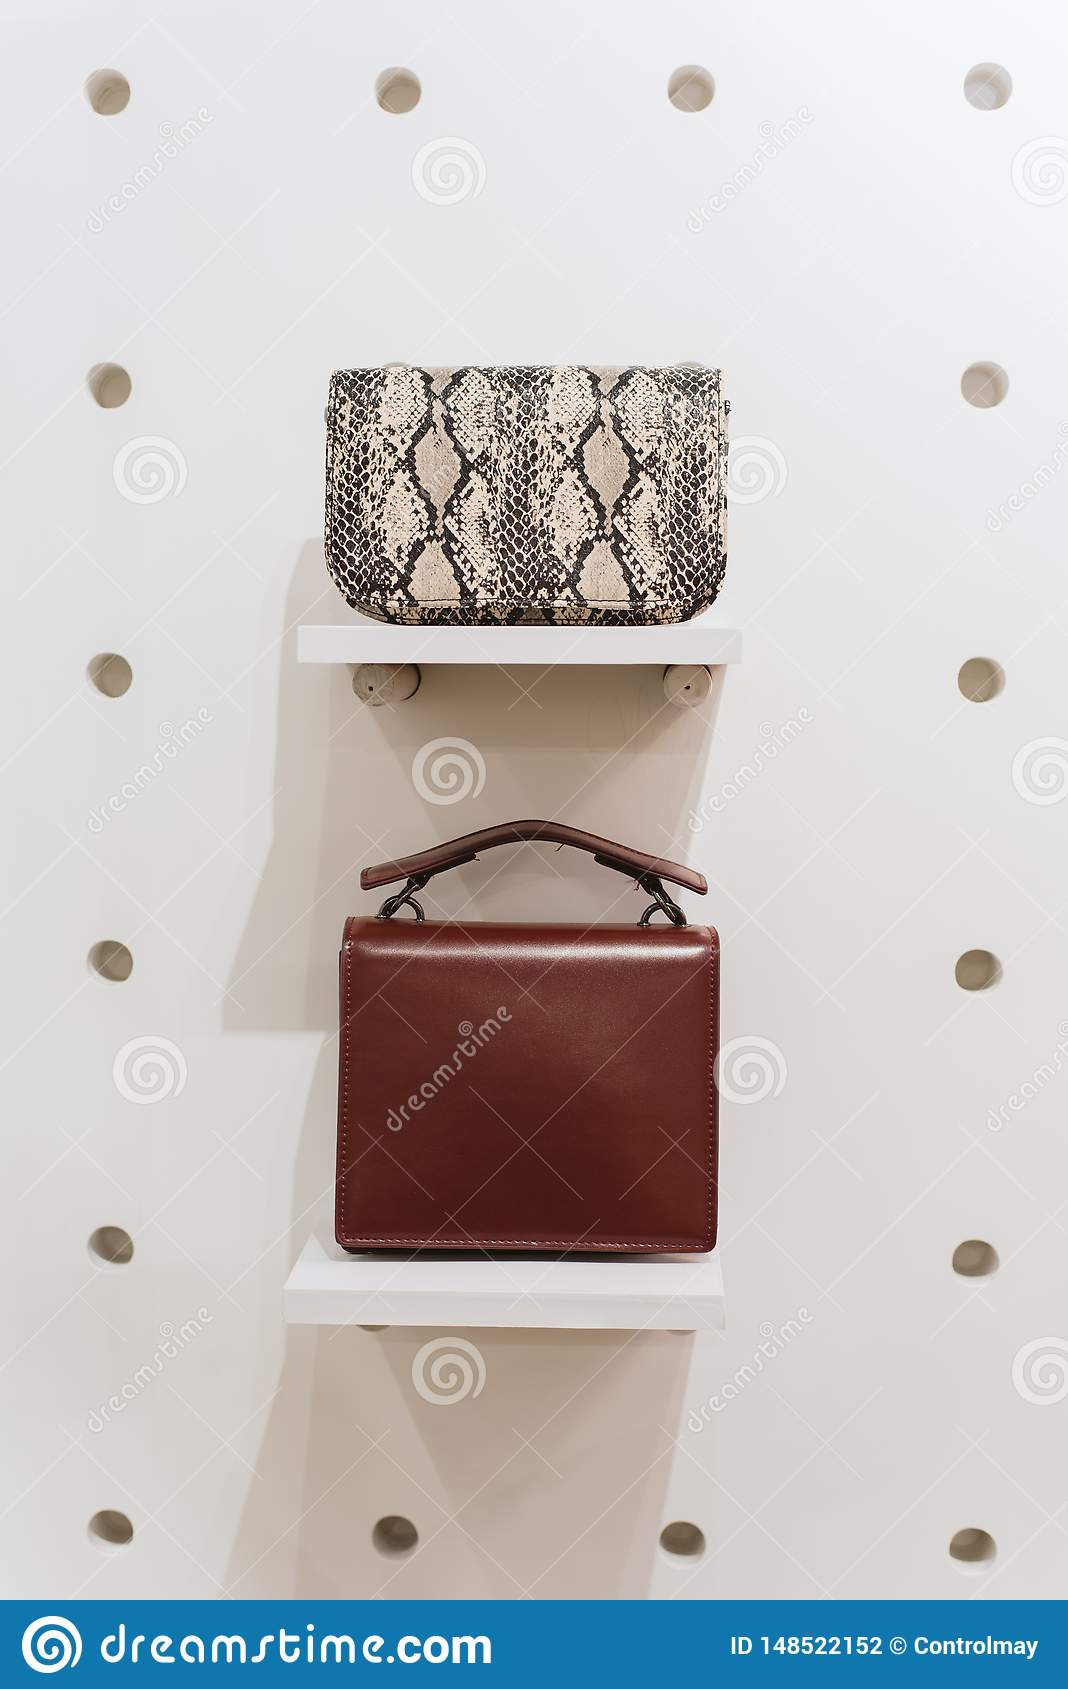 Two stylish bags on a white background